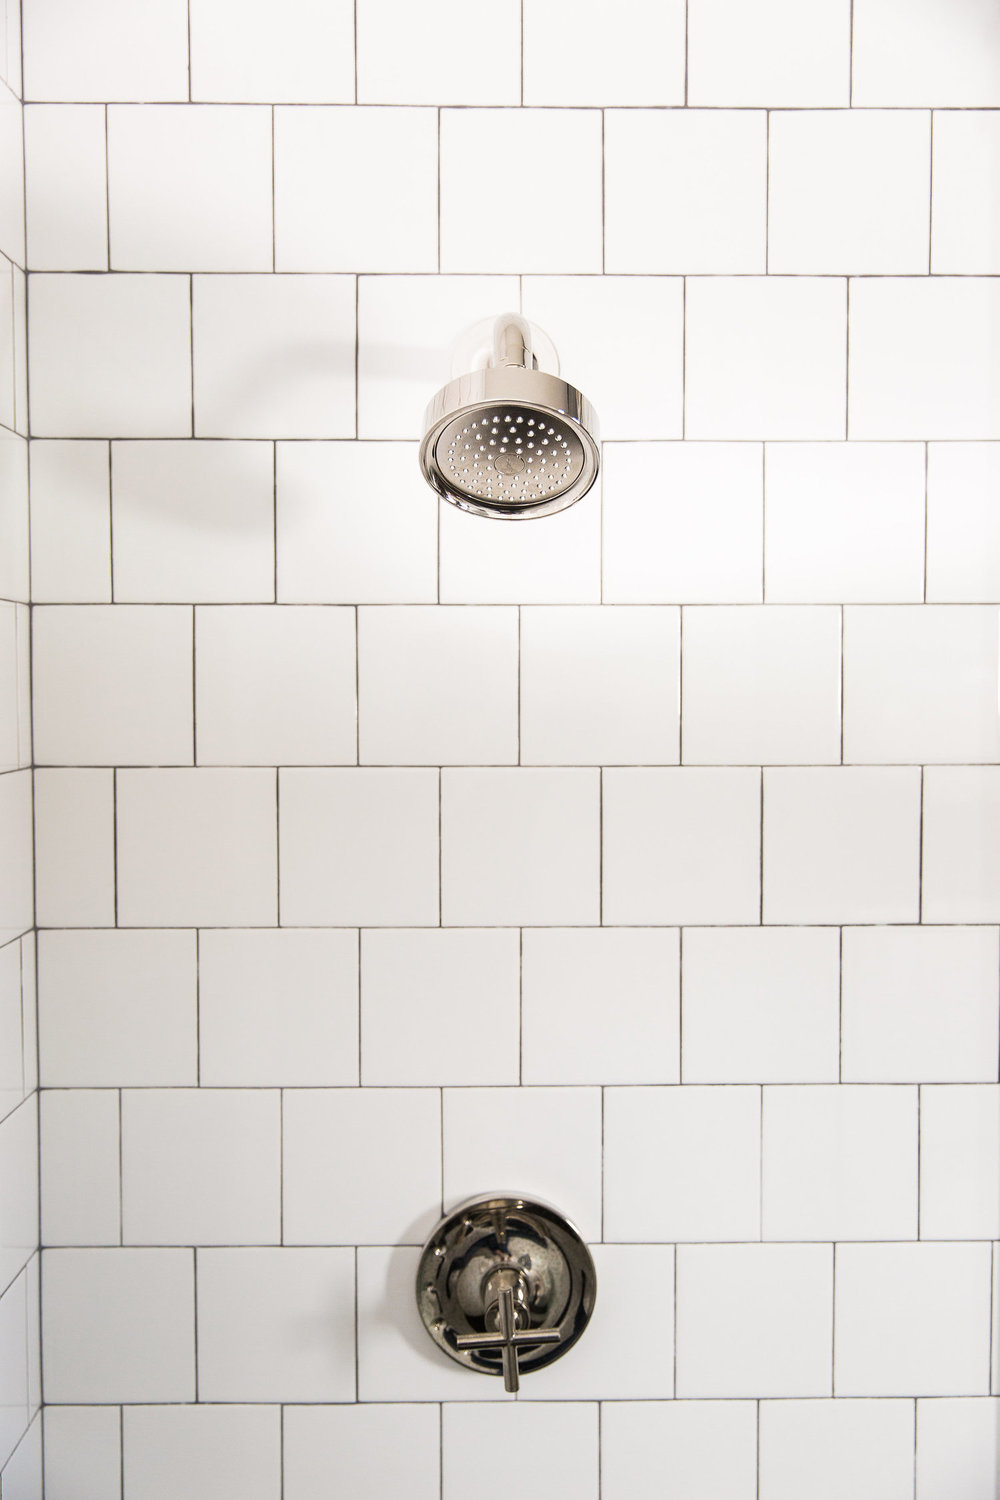 Backsplash tile details in bathroom shower